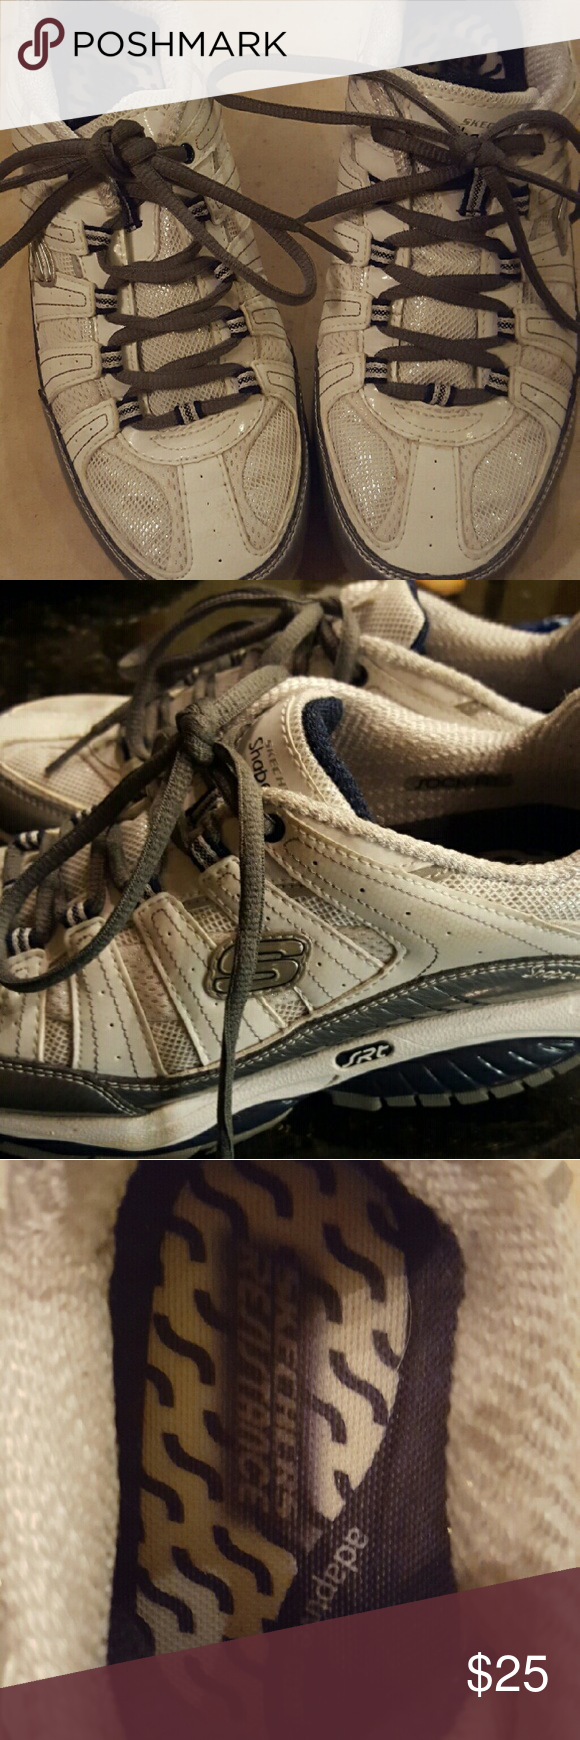 Sketcher Shape Up shoes Great condition worn a few times indoors. White and silver with a touch of Shimmer Sketches Shape Up Shoes Shoes Athletic Shoes